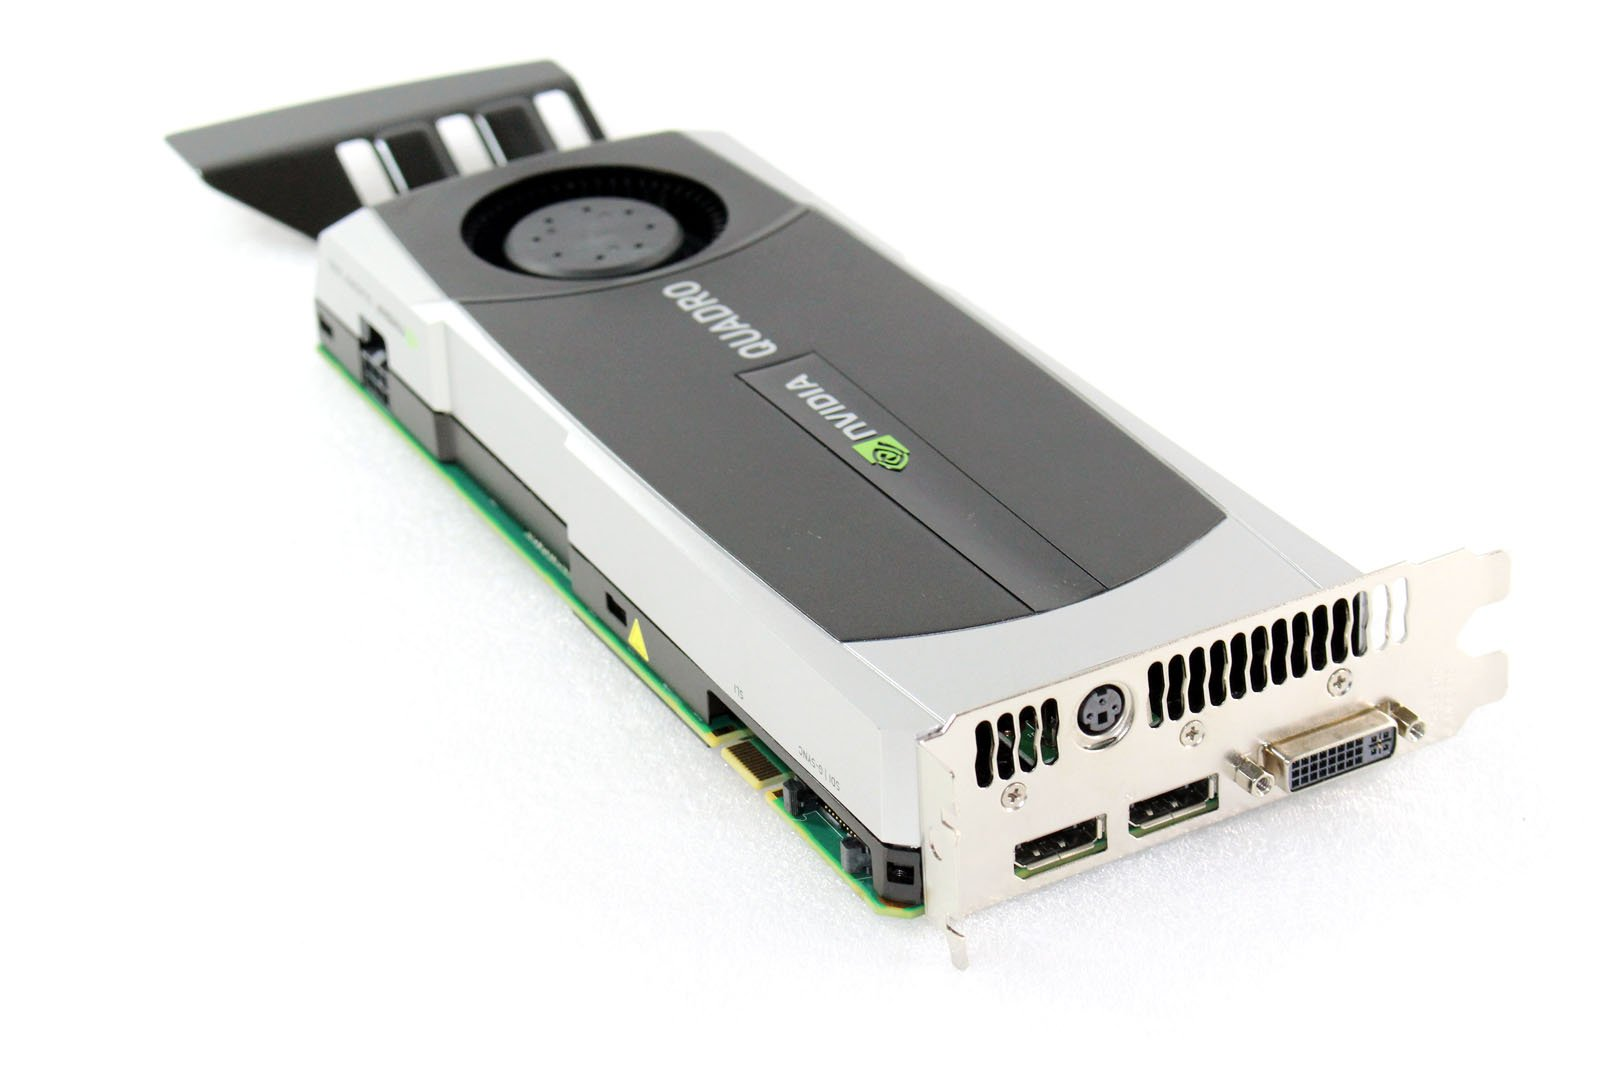 HP 616078-001 NVIDIA Quadro 6000 PCIe graphics card - With 6.0GB GDDR5 GPU memory, max resolution 2560x1600, max power consumption 204Watt, one Dual Link DVI-I and two DisplayPorts connections by NVIDIA (Image #7)